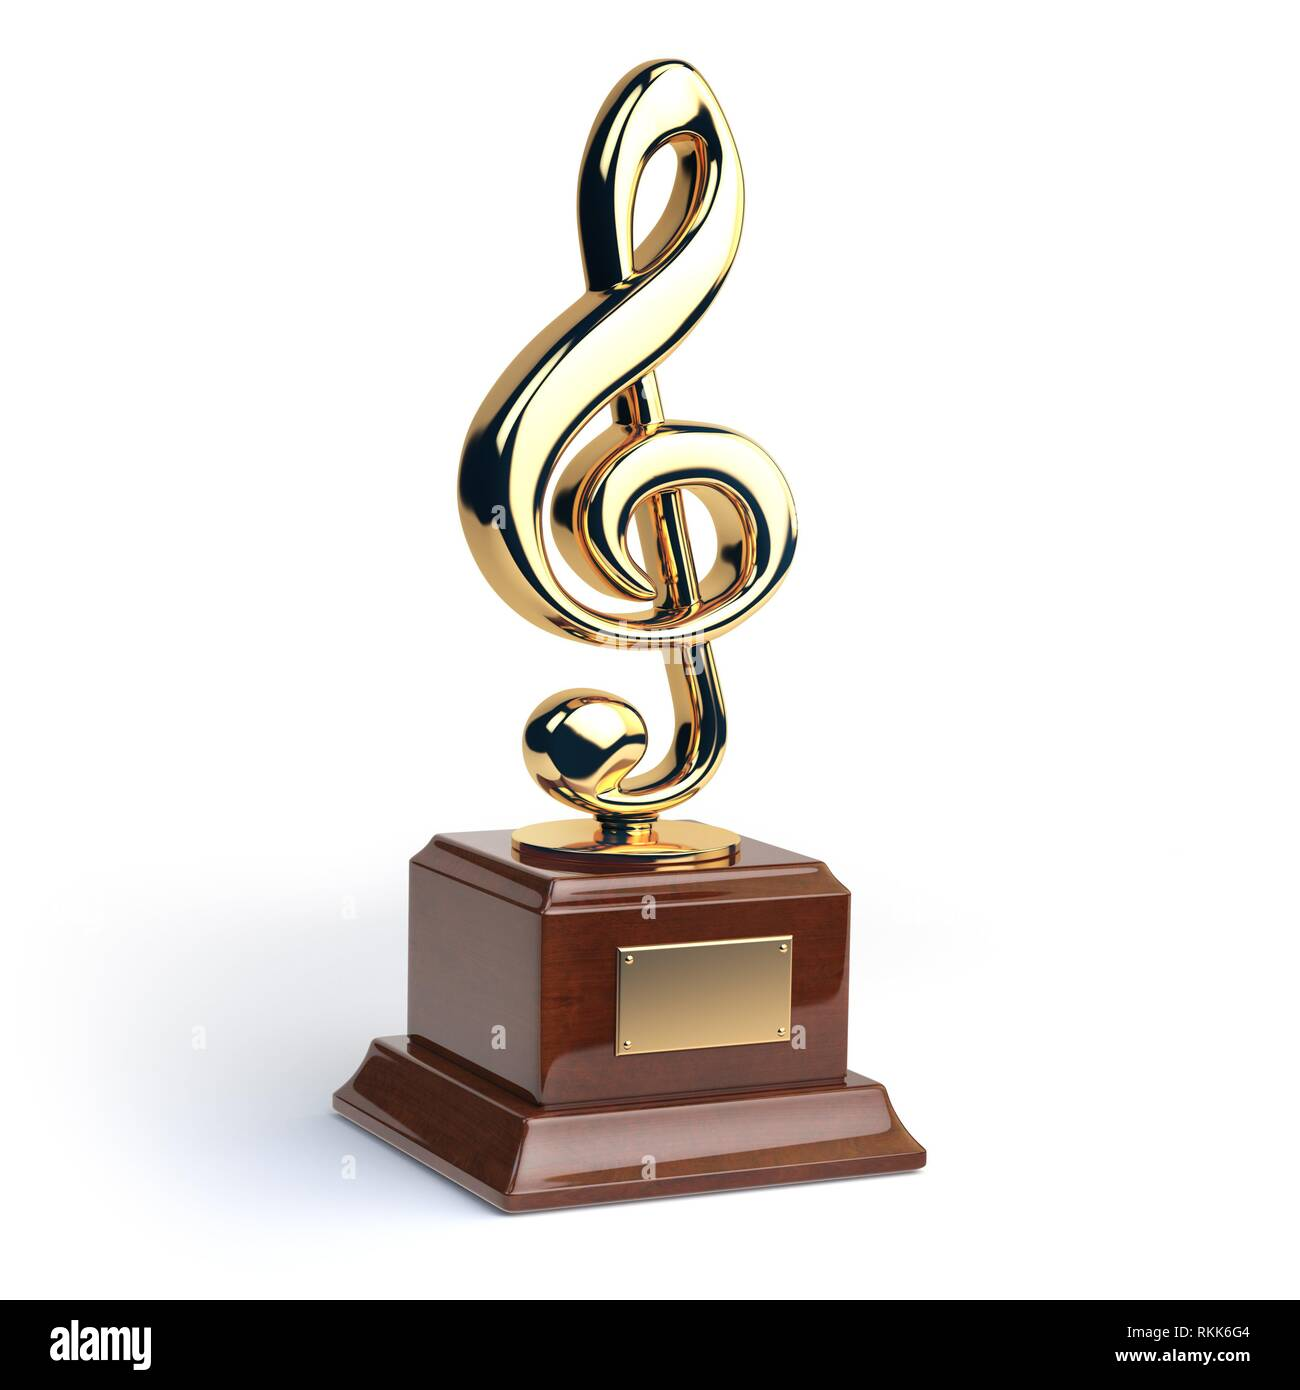 Gold Treble Clef S Trophy Isolated On White Music Award Concept 3d Illustration Stock Photo Alamy